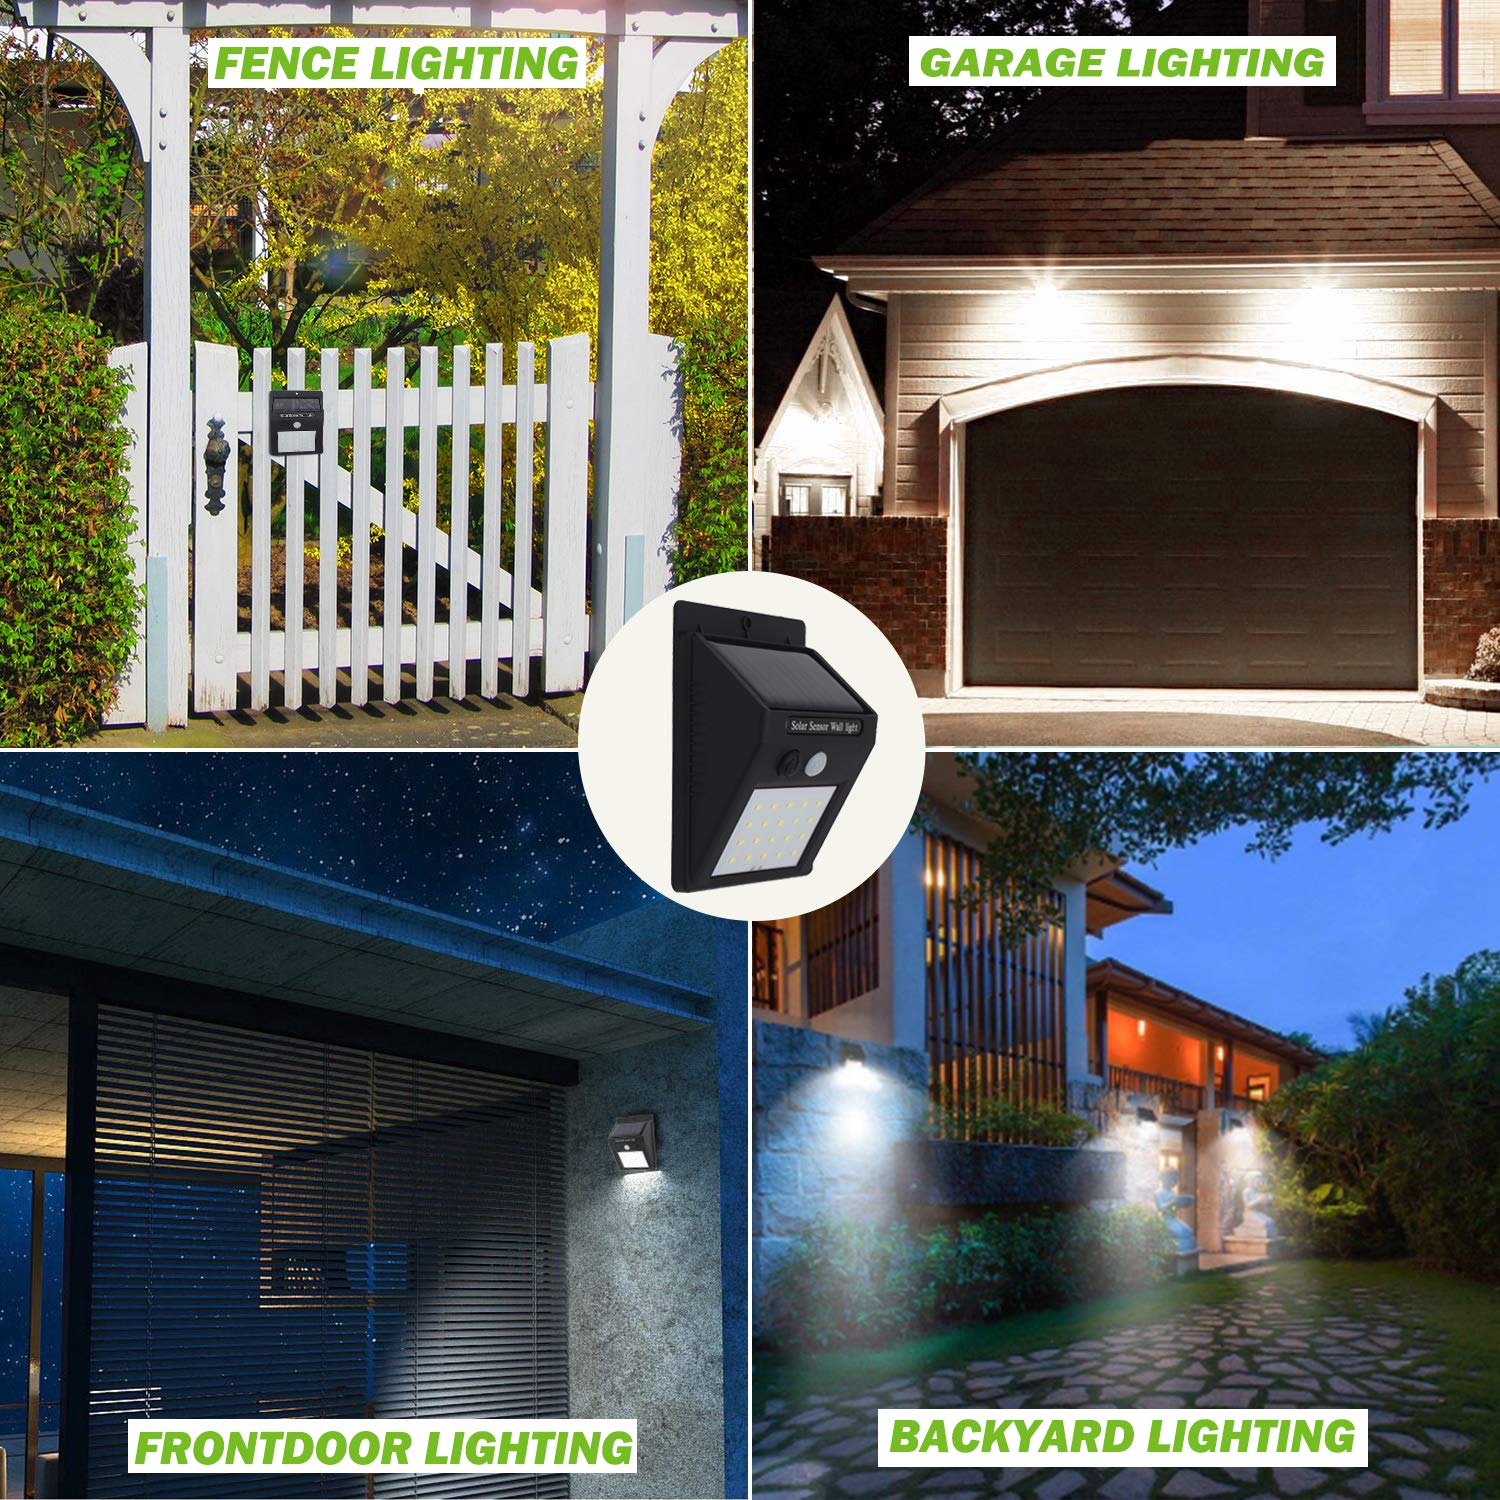 LED Solar Lights, Motion Sensor Wall Lights Security Light with 120°Wide Beam for Garden, Yard, Garage, Patio, Front Door, Outdoor (4 Pack)